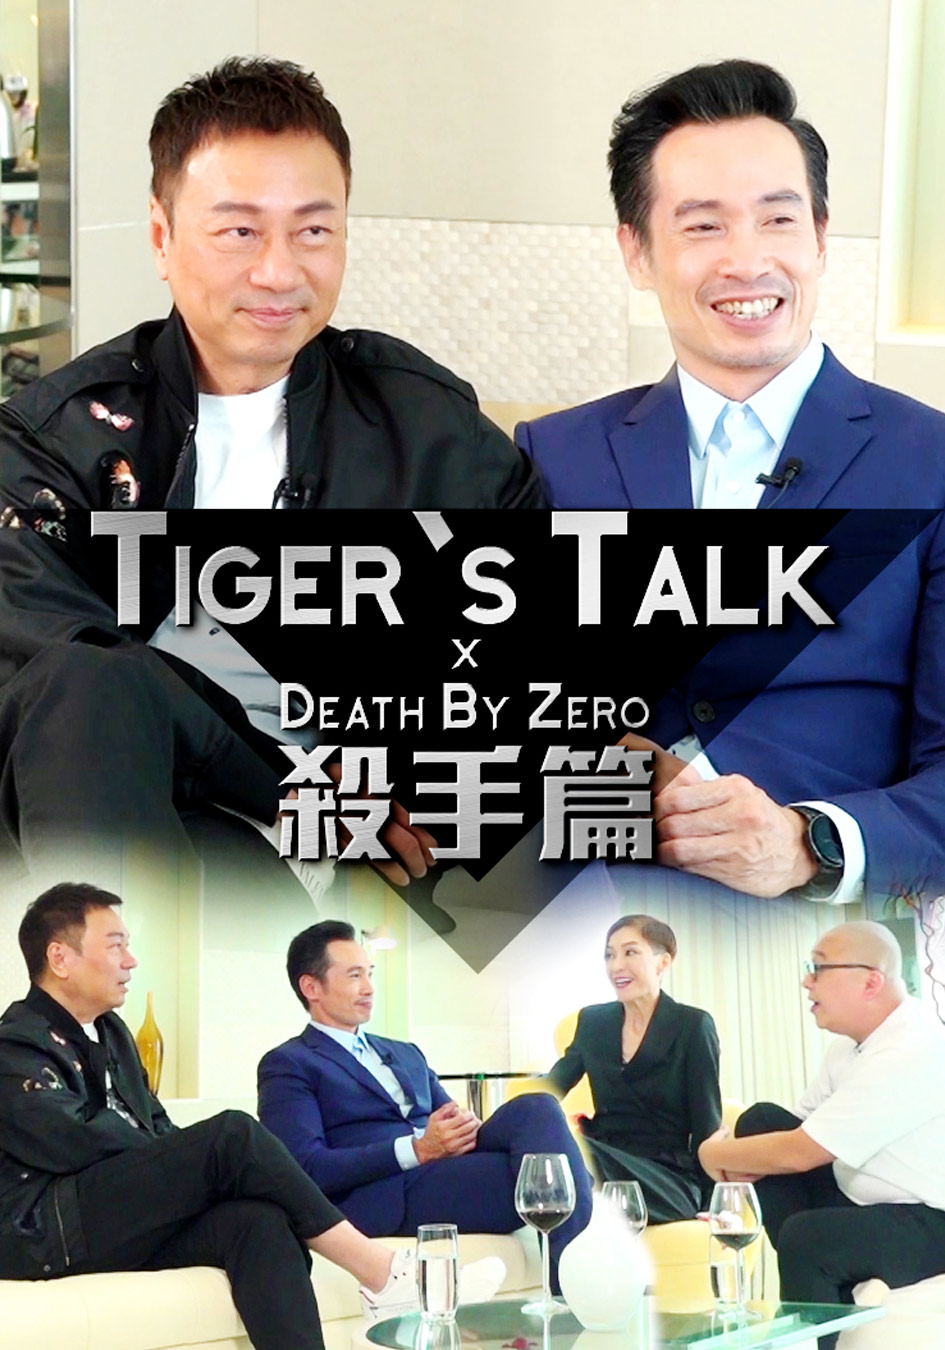 Tiger's Talk之殺手篇-Tiger's Talk x Death By Zero